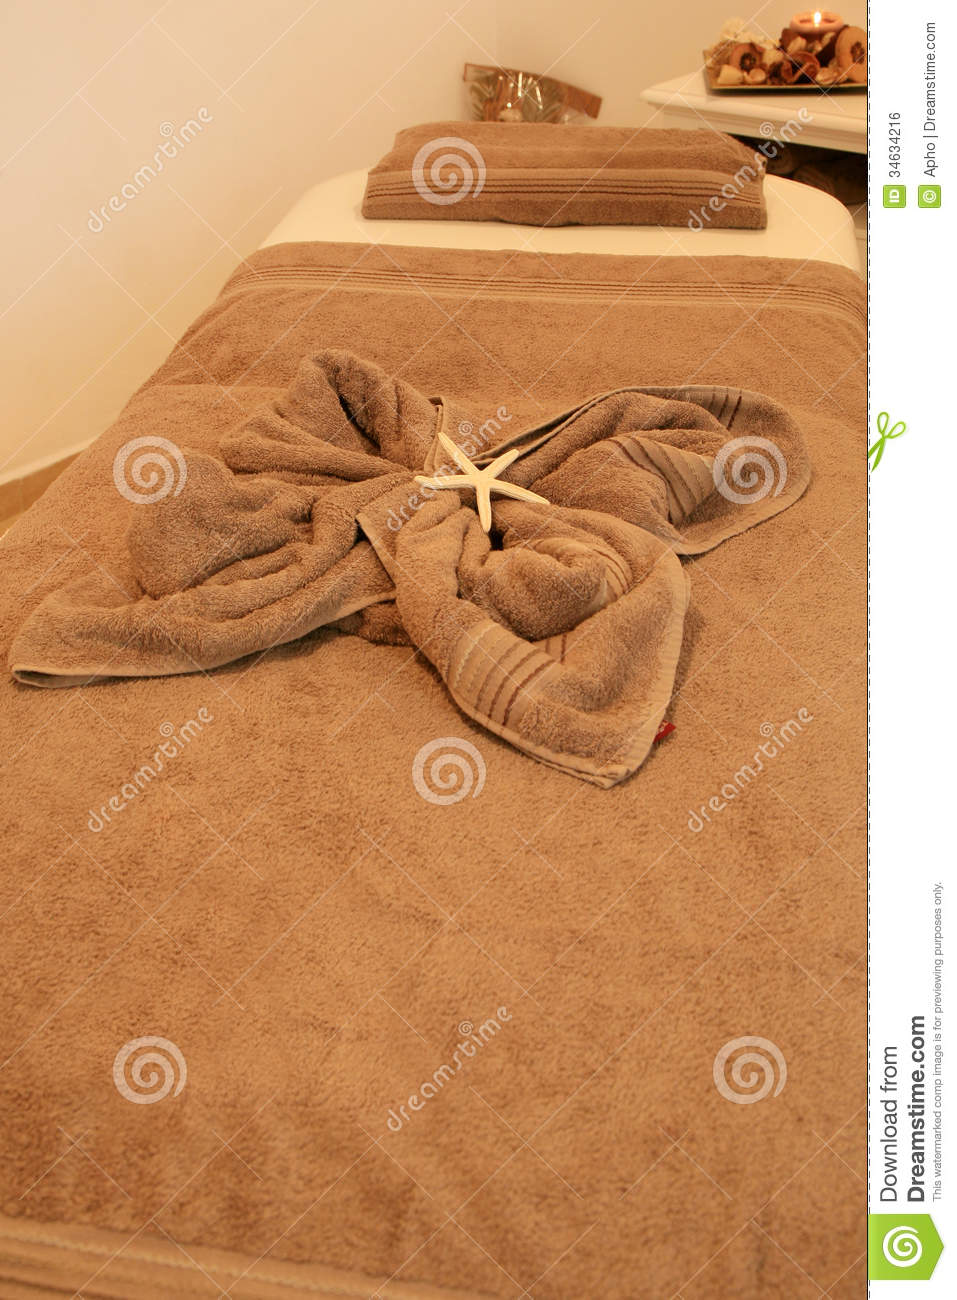 spa massage bed royalty free stock image image 34634216